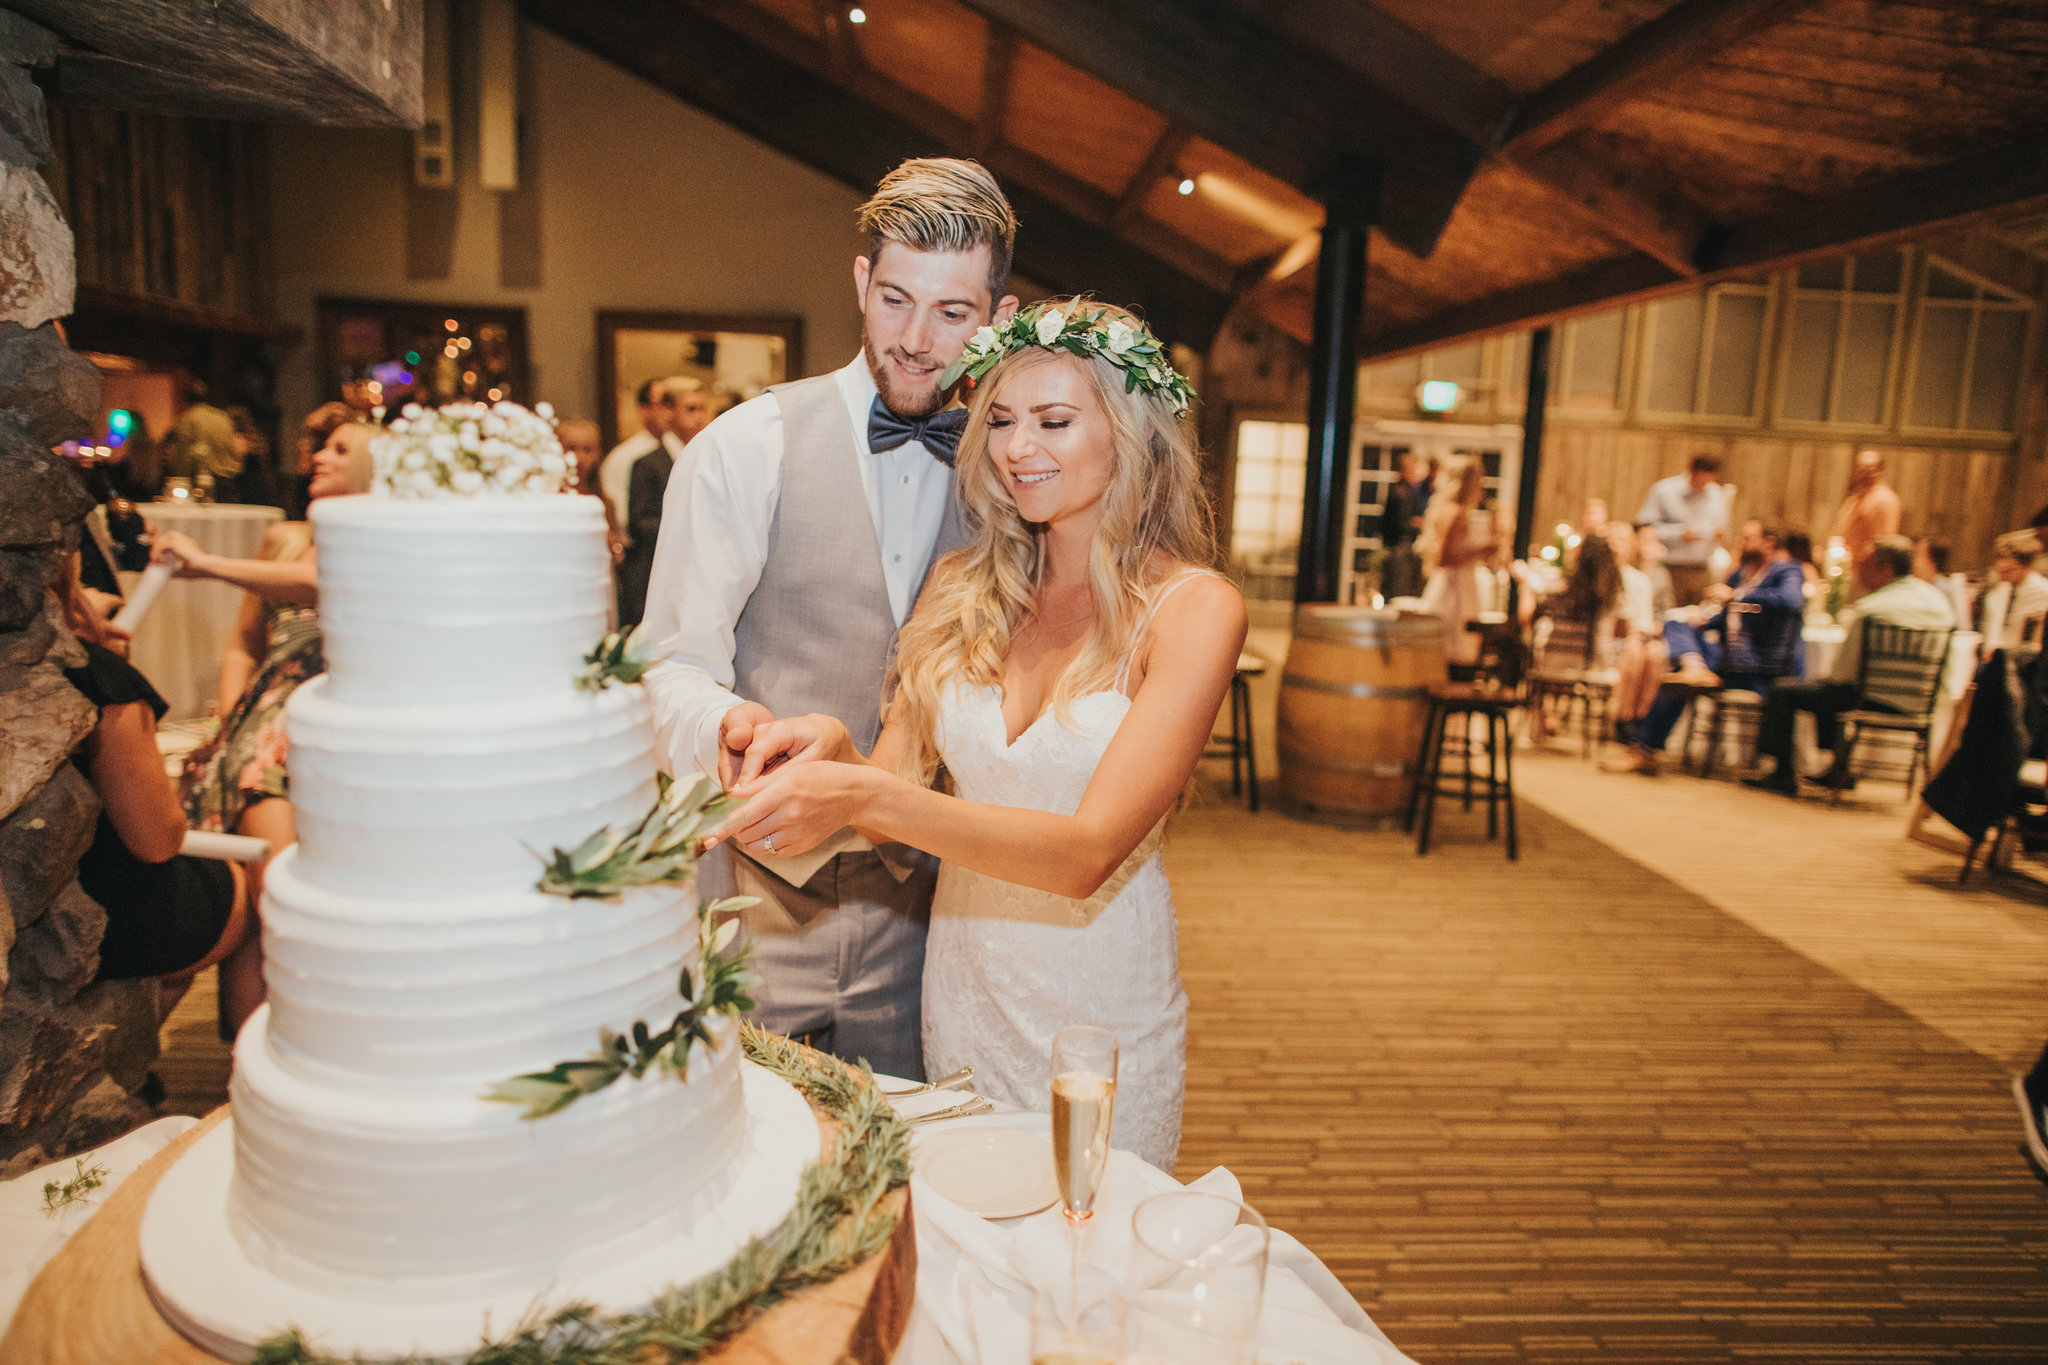 Cake Cutting | Calamigos Ranch